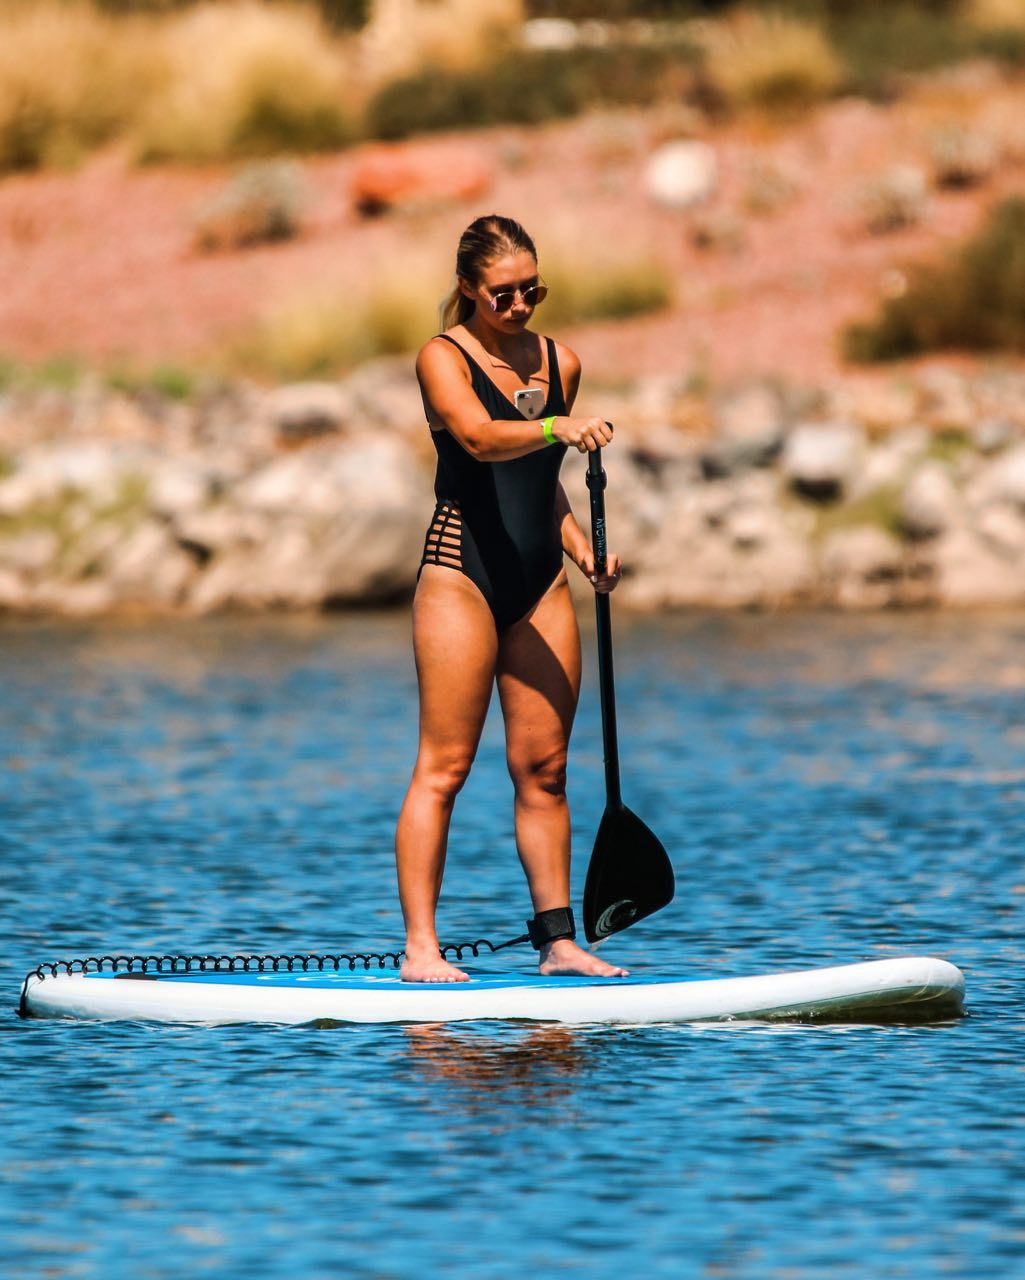 Lake Las Vegas Water Sports is the perfect place to escape